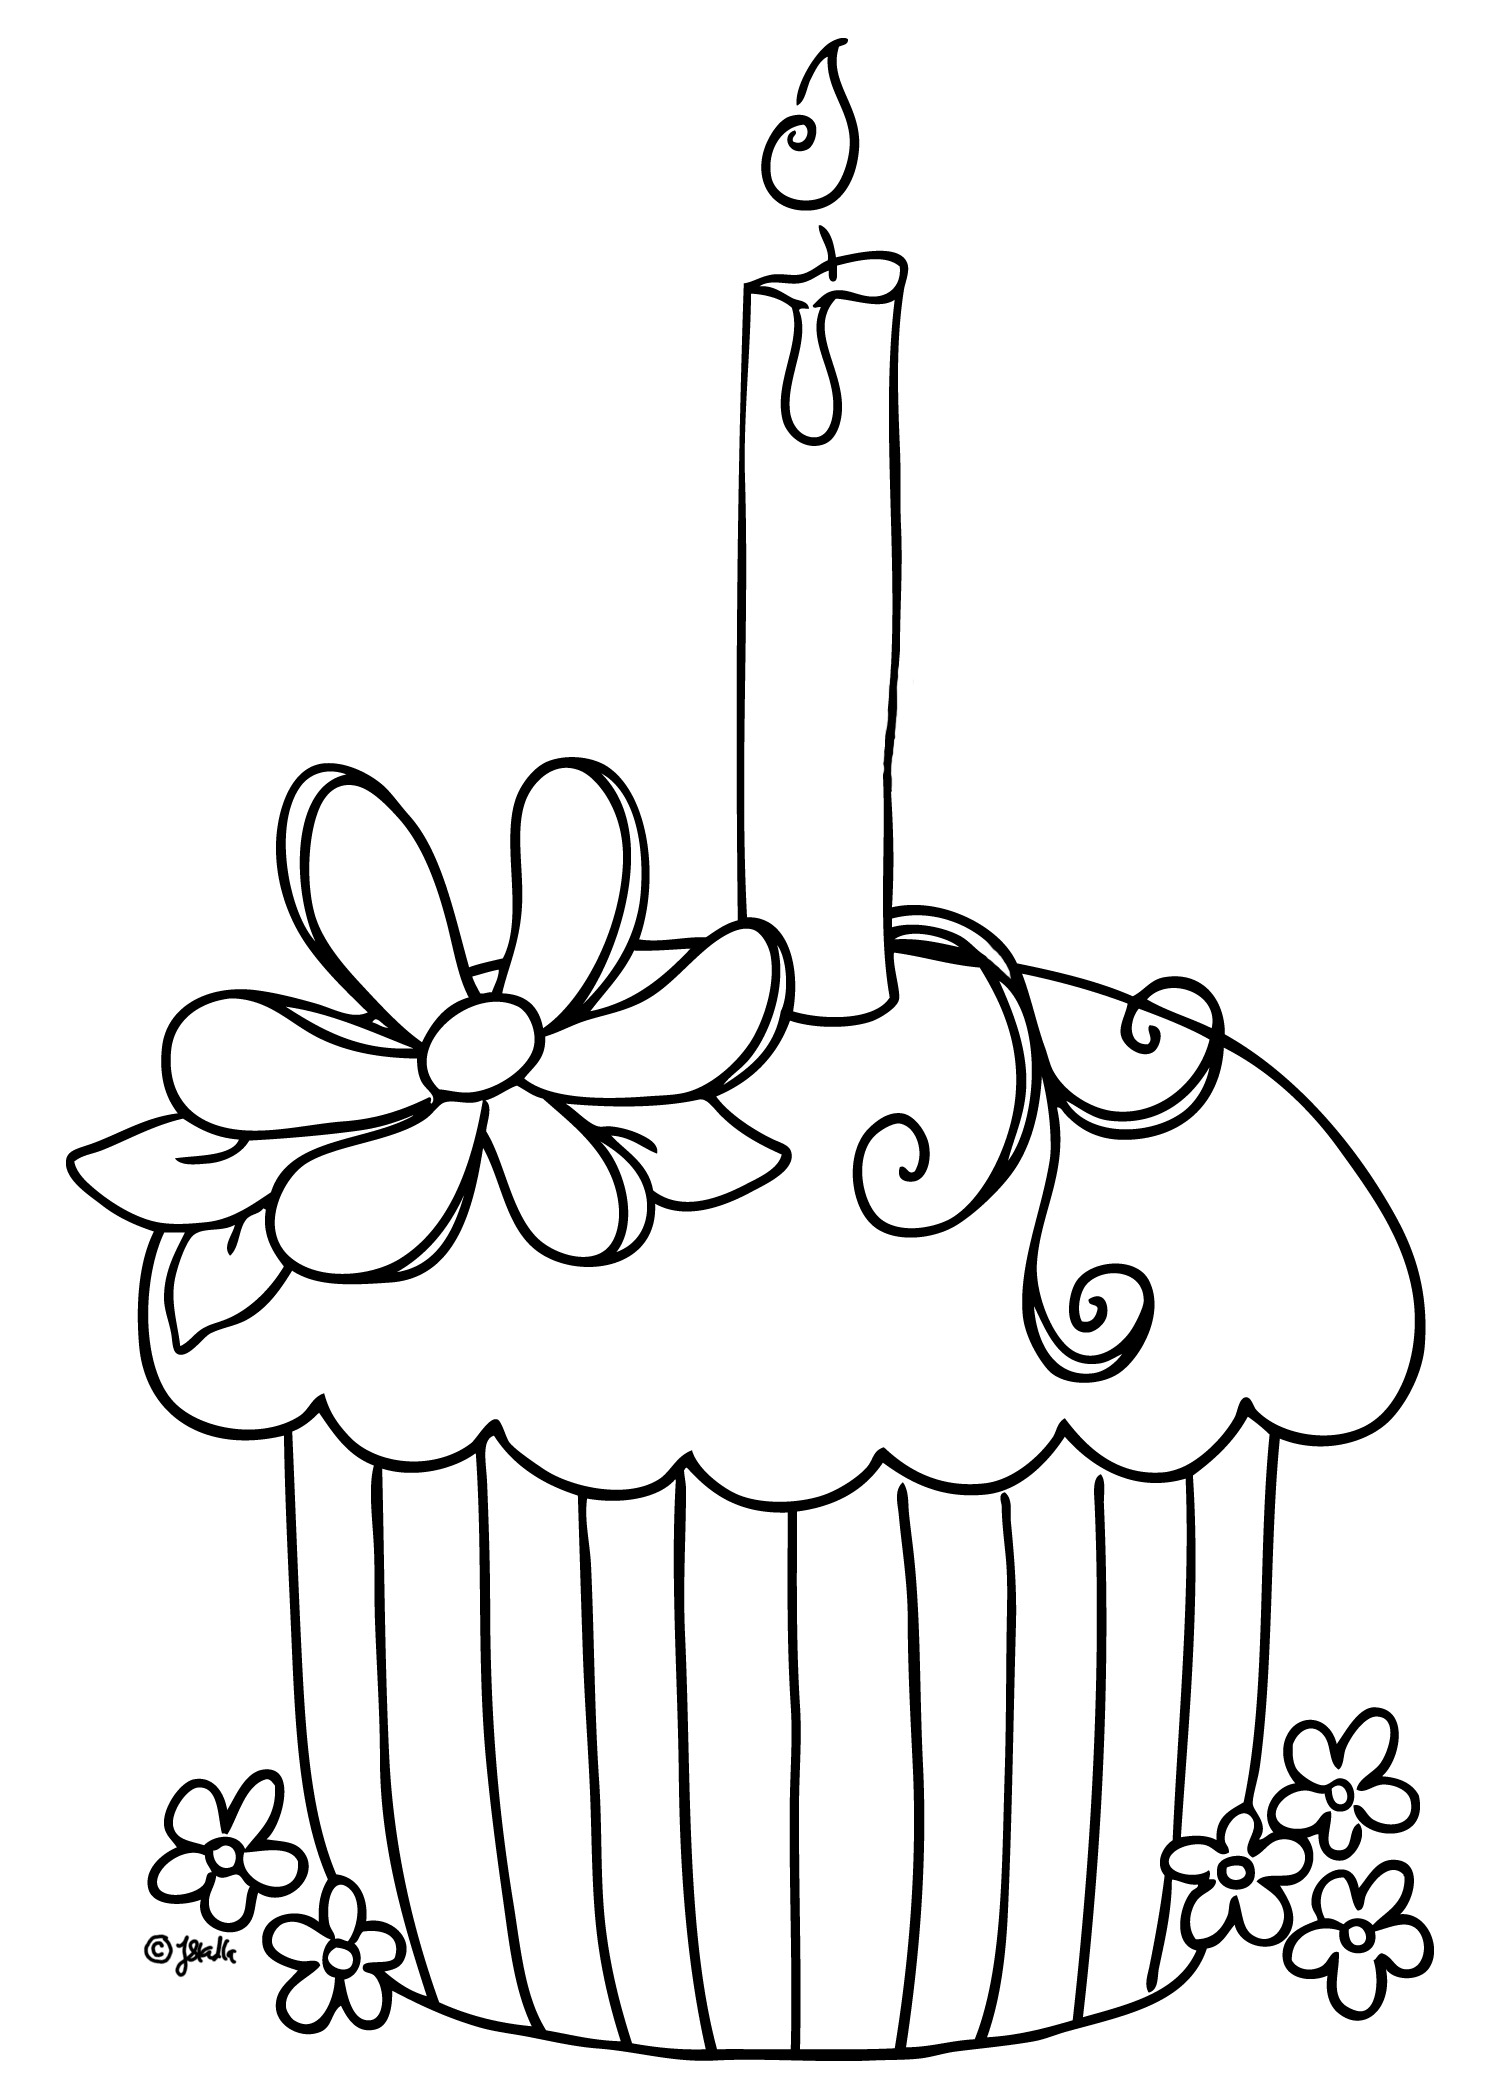 cupcake-coloriage-basic2